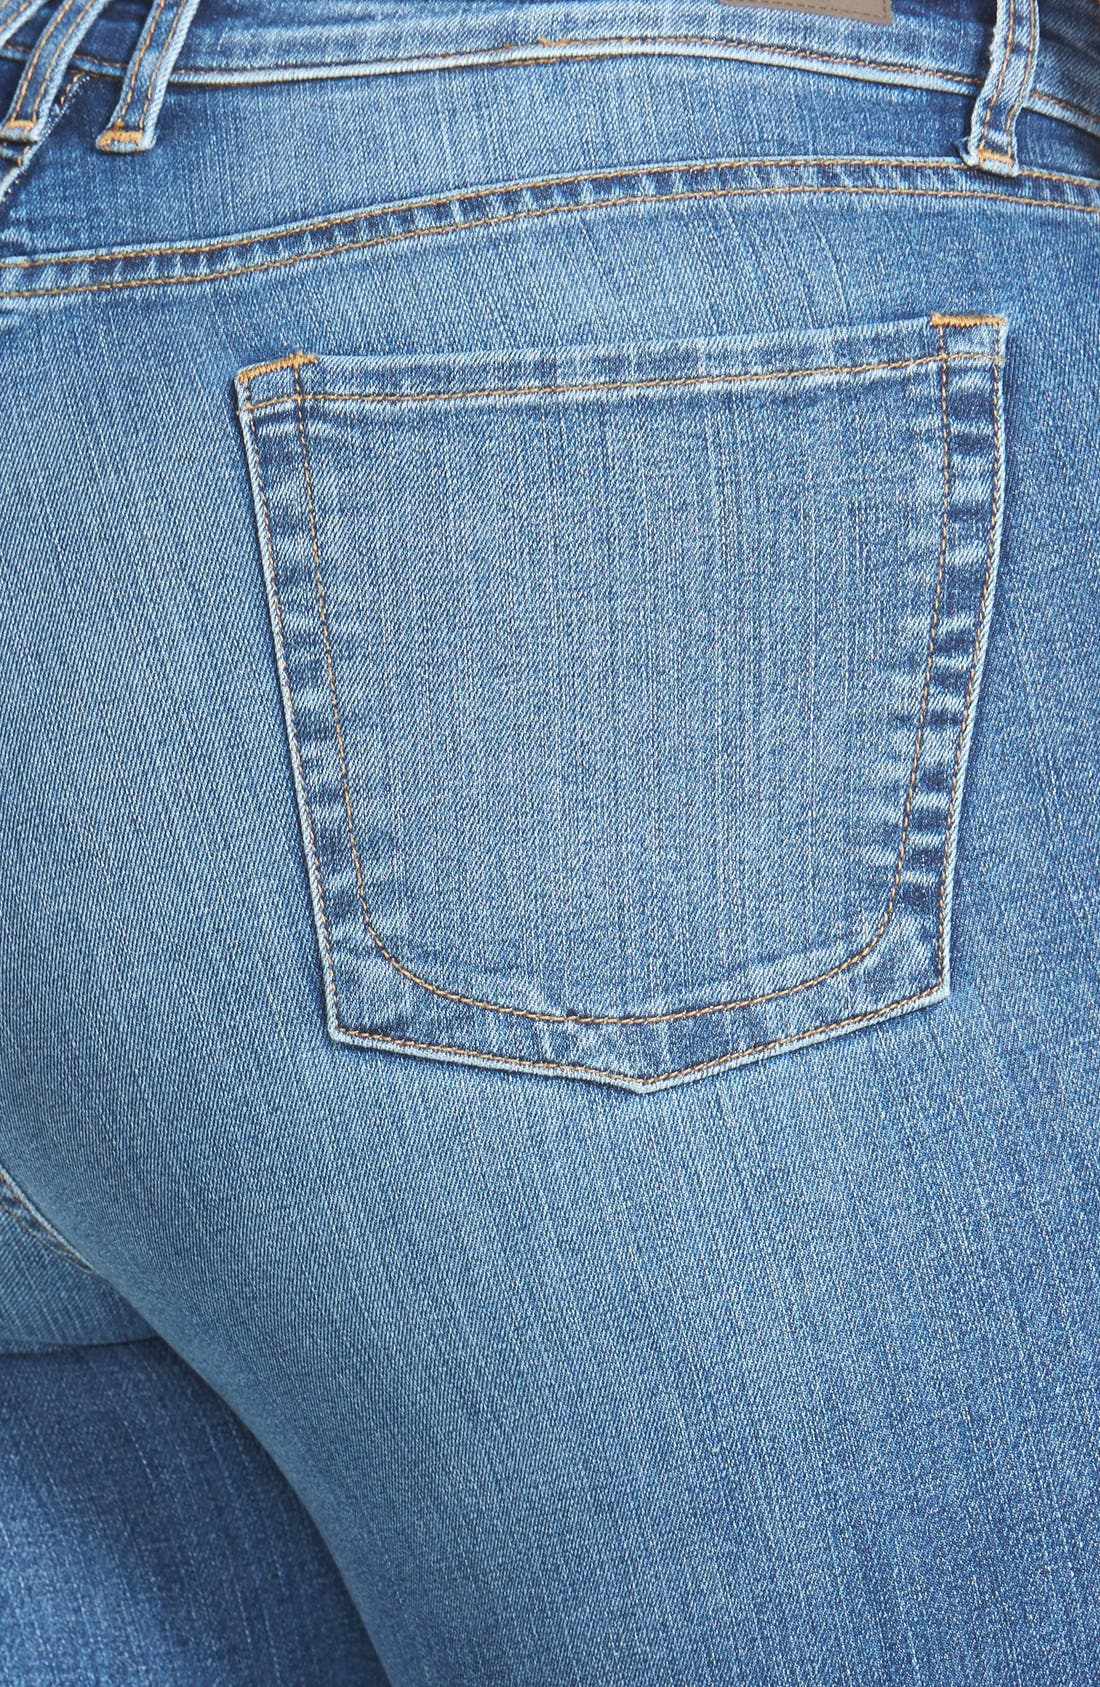 Alternate Image 3  - KUT from the Kloth 'Diana' Stretch Skinny Jeans (Contingent) (Plus Size)